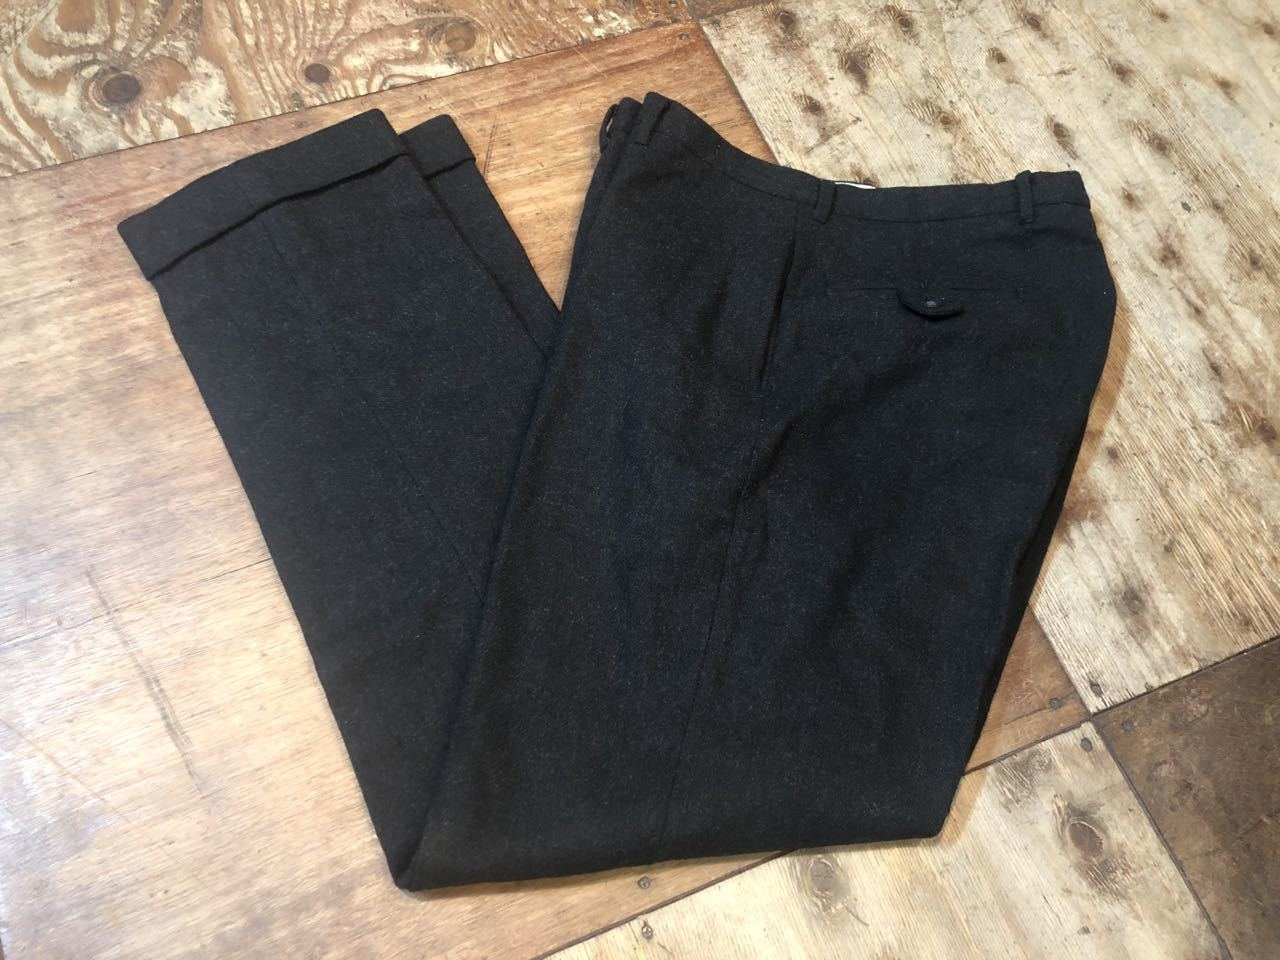 11月16日(土)入荷!60s TAKE IVY !! Elderado UNION MADE WOOL テーパード IVY SLACKS  !_c0144020_13352919.jpg